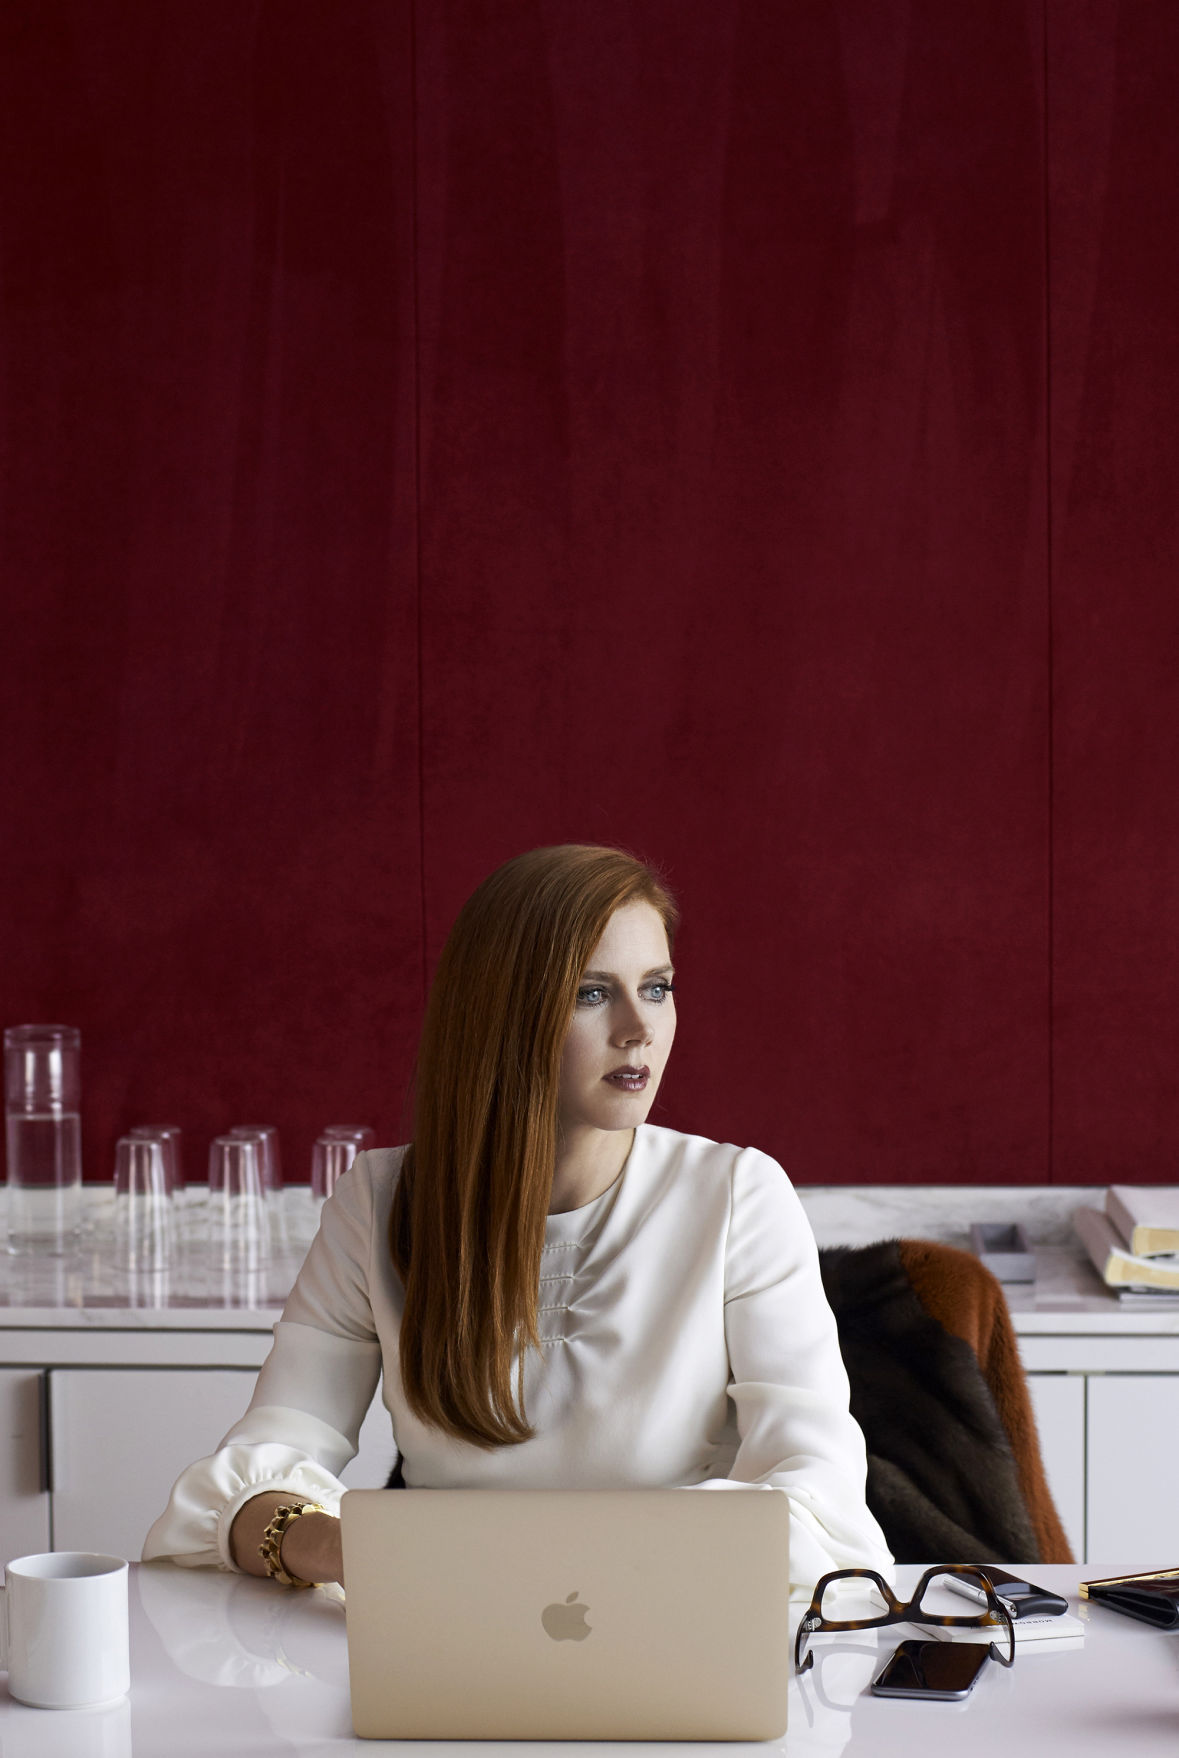 Amy Adams Nude In Nocturnal Animals an ex-husband writes his revenge tale in 'nocturnal animals